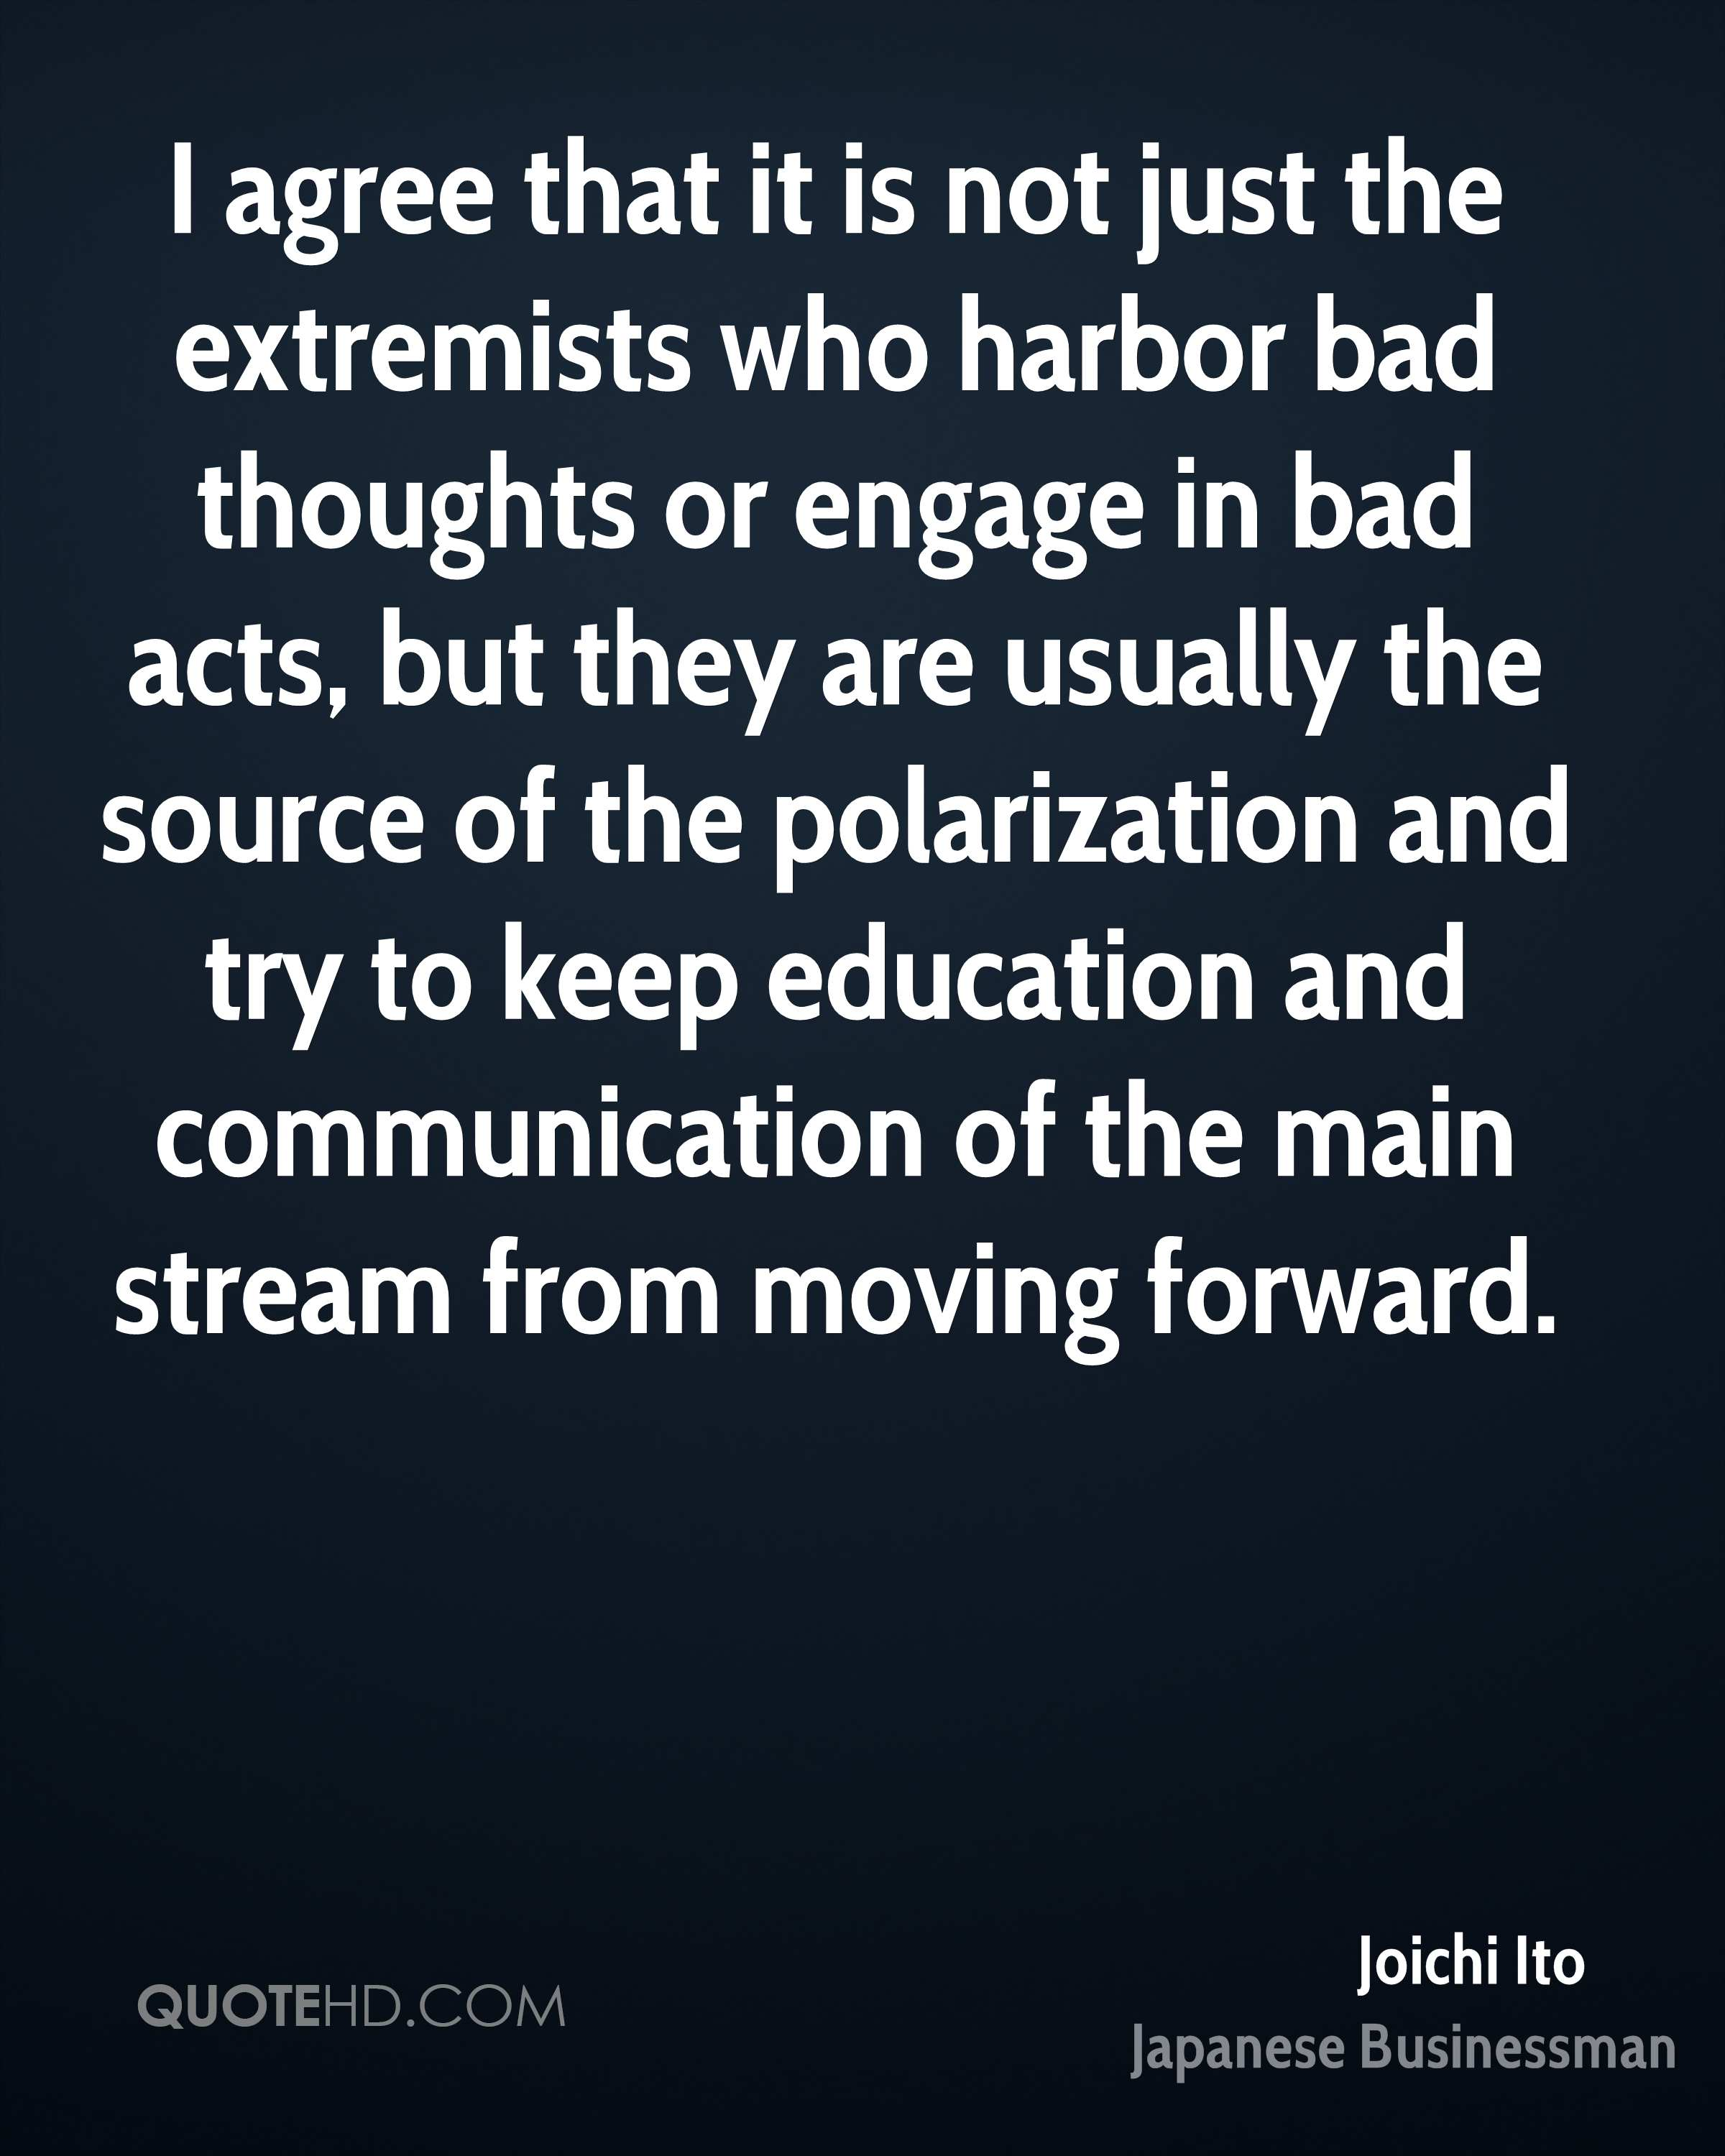 I agree that it is not just the extremists who harbor bad thoughts or engage in bad acts, but they are usually the source of the polarization and try to keep education and communication of the main stream from moving forward.